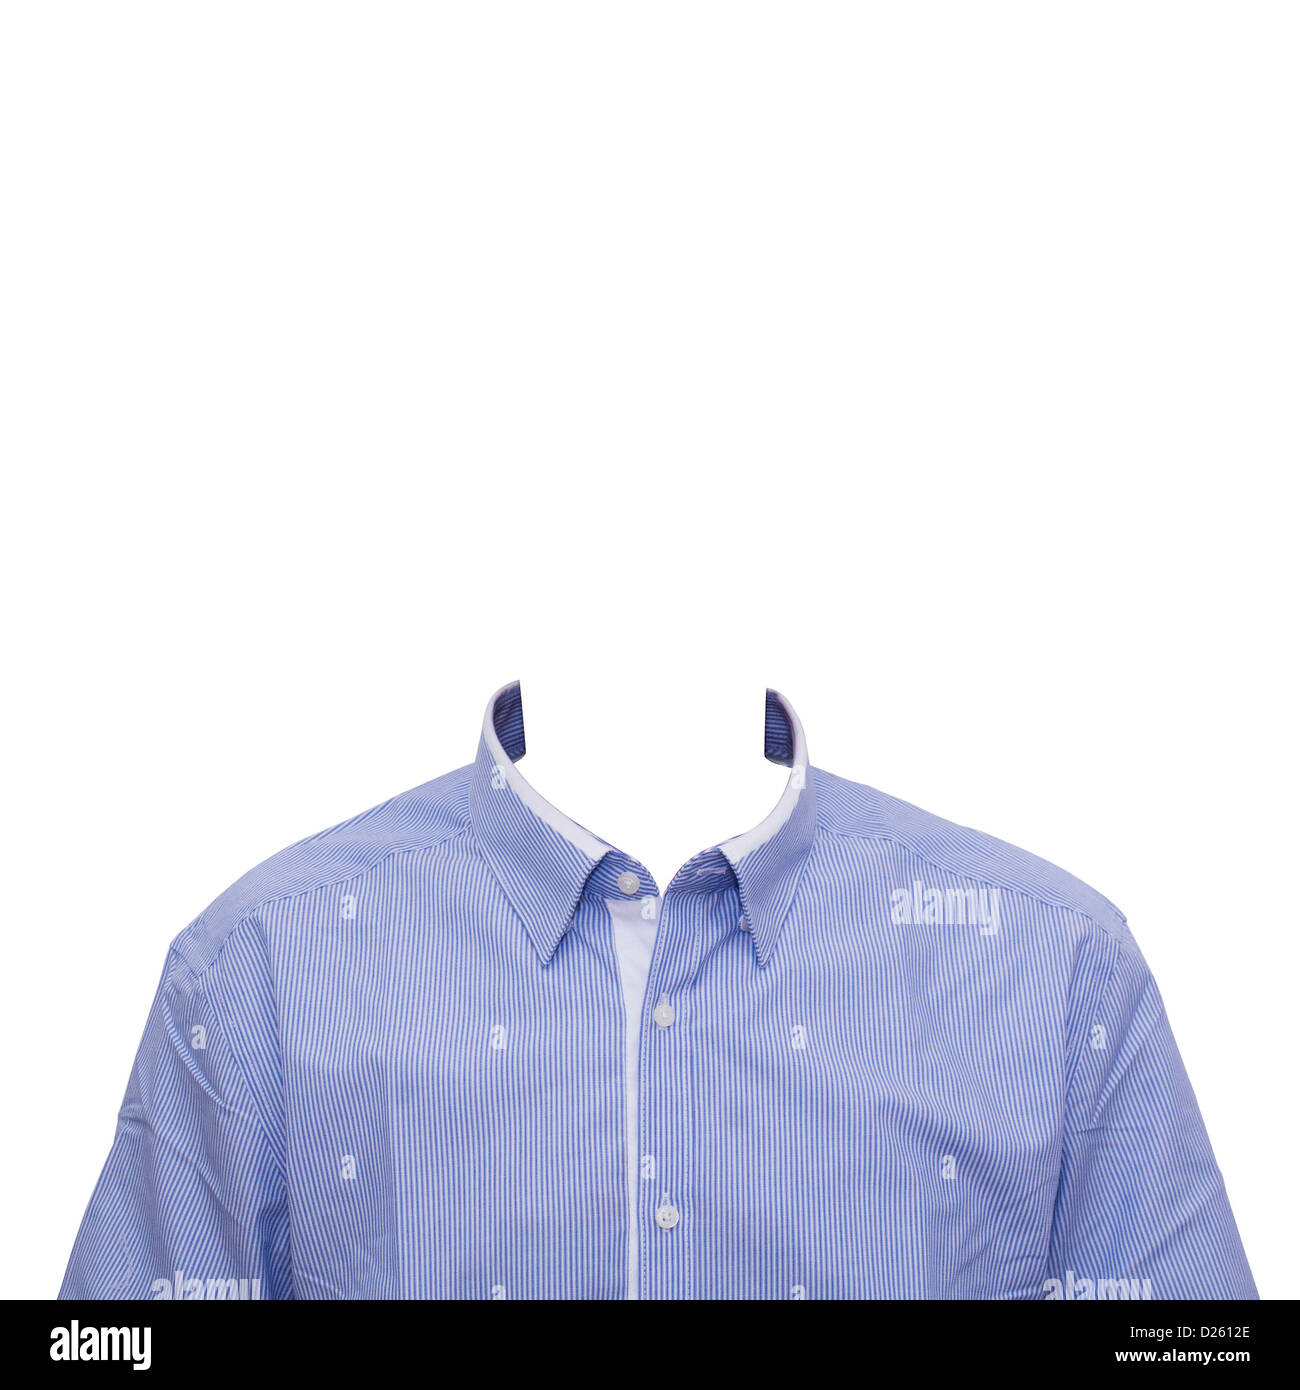 Collar Shirt Template For Concept Or Formal Portraits